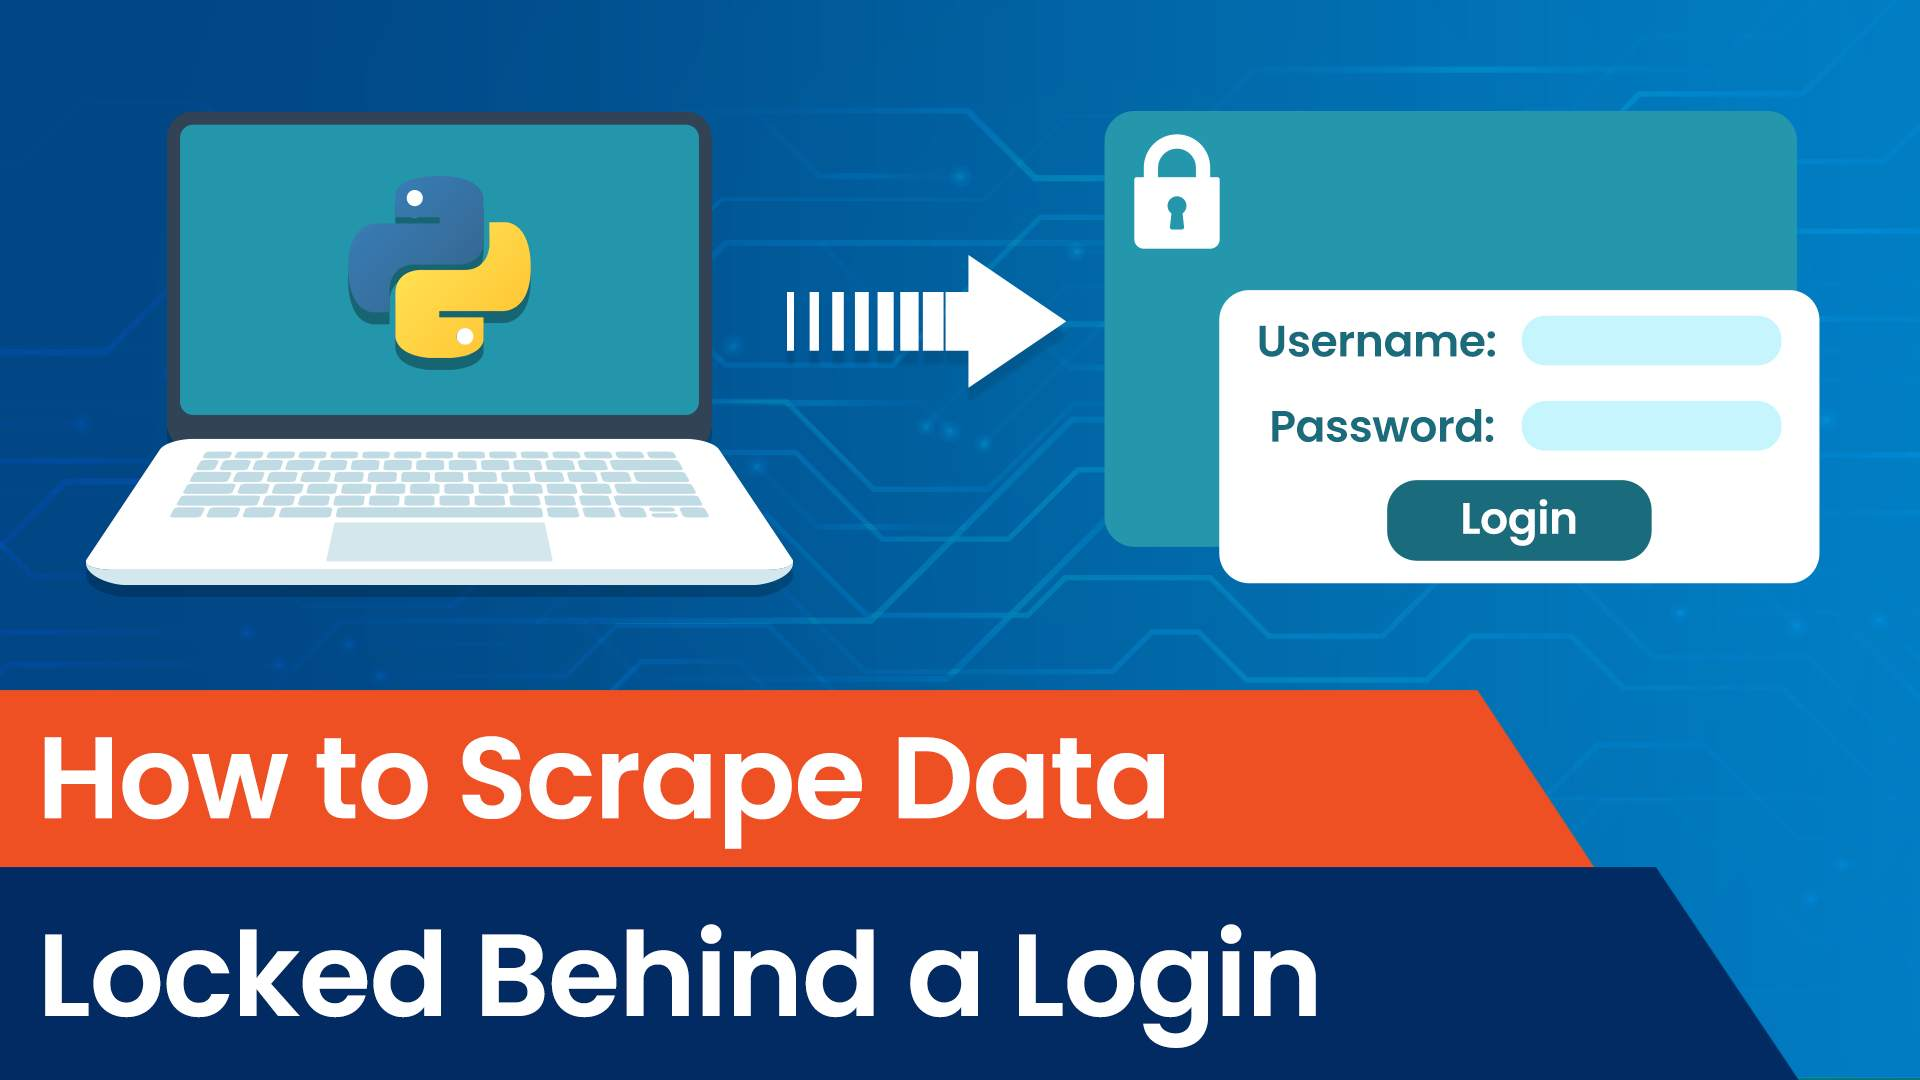 scrape data locked behind a login, how to scrape data locked behind a login, web scraping, scraping data that requires login